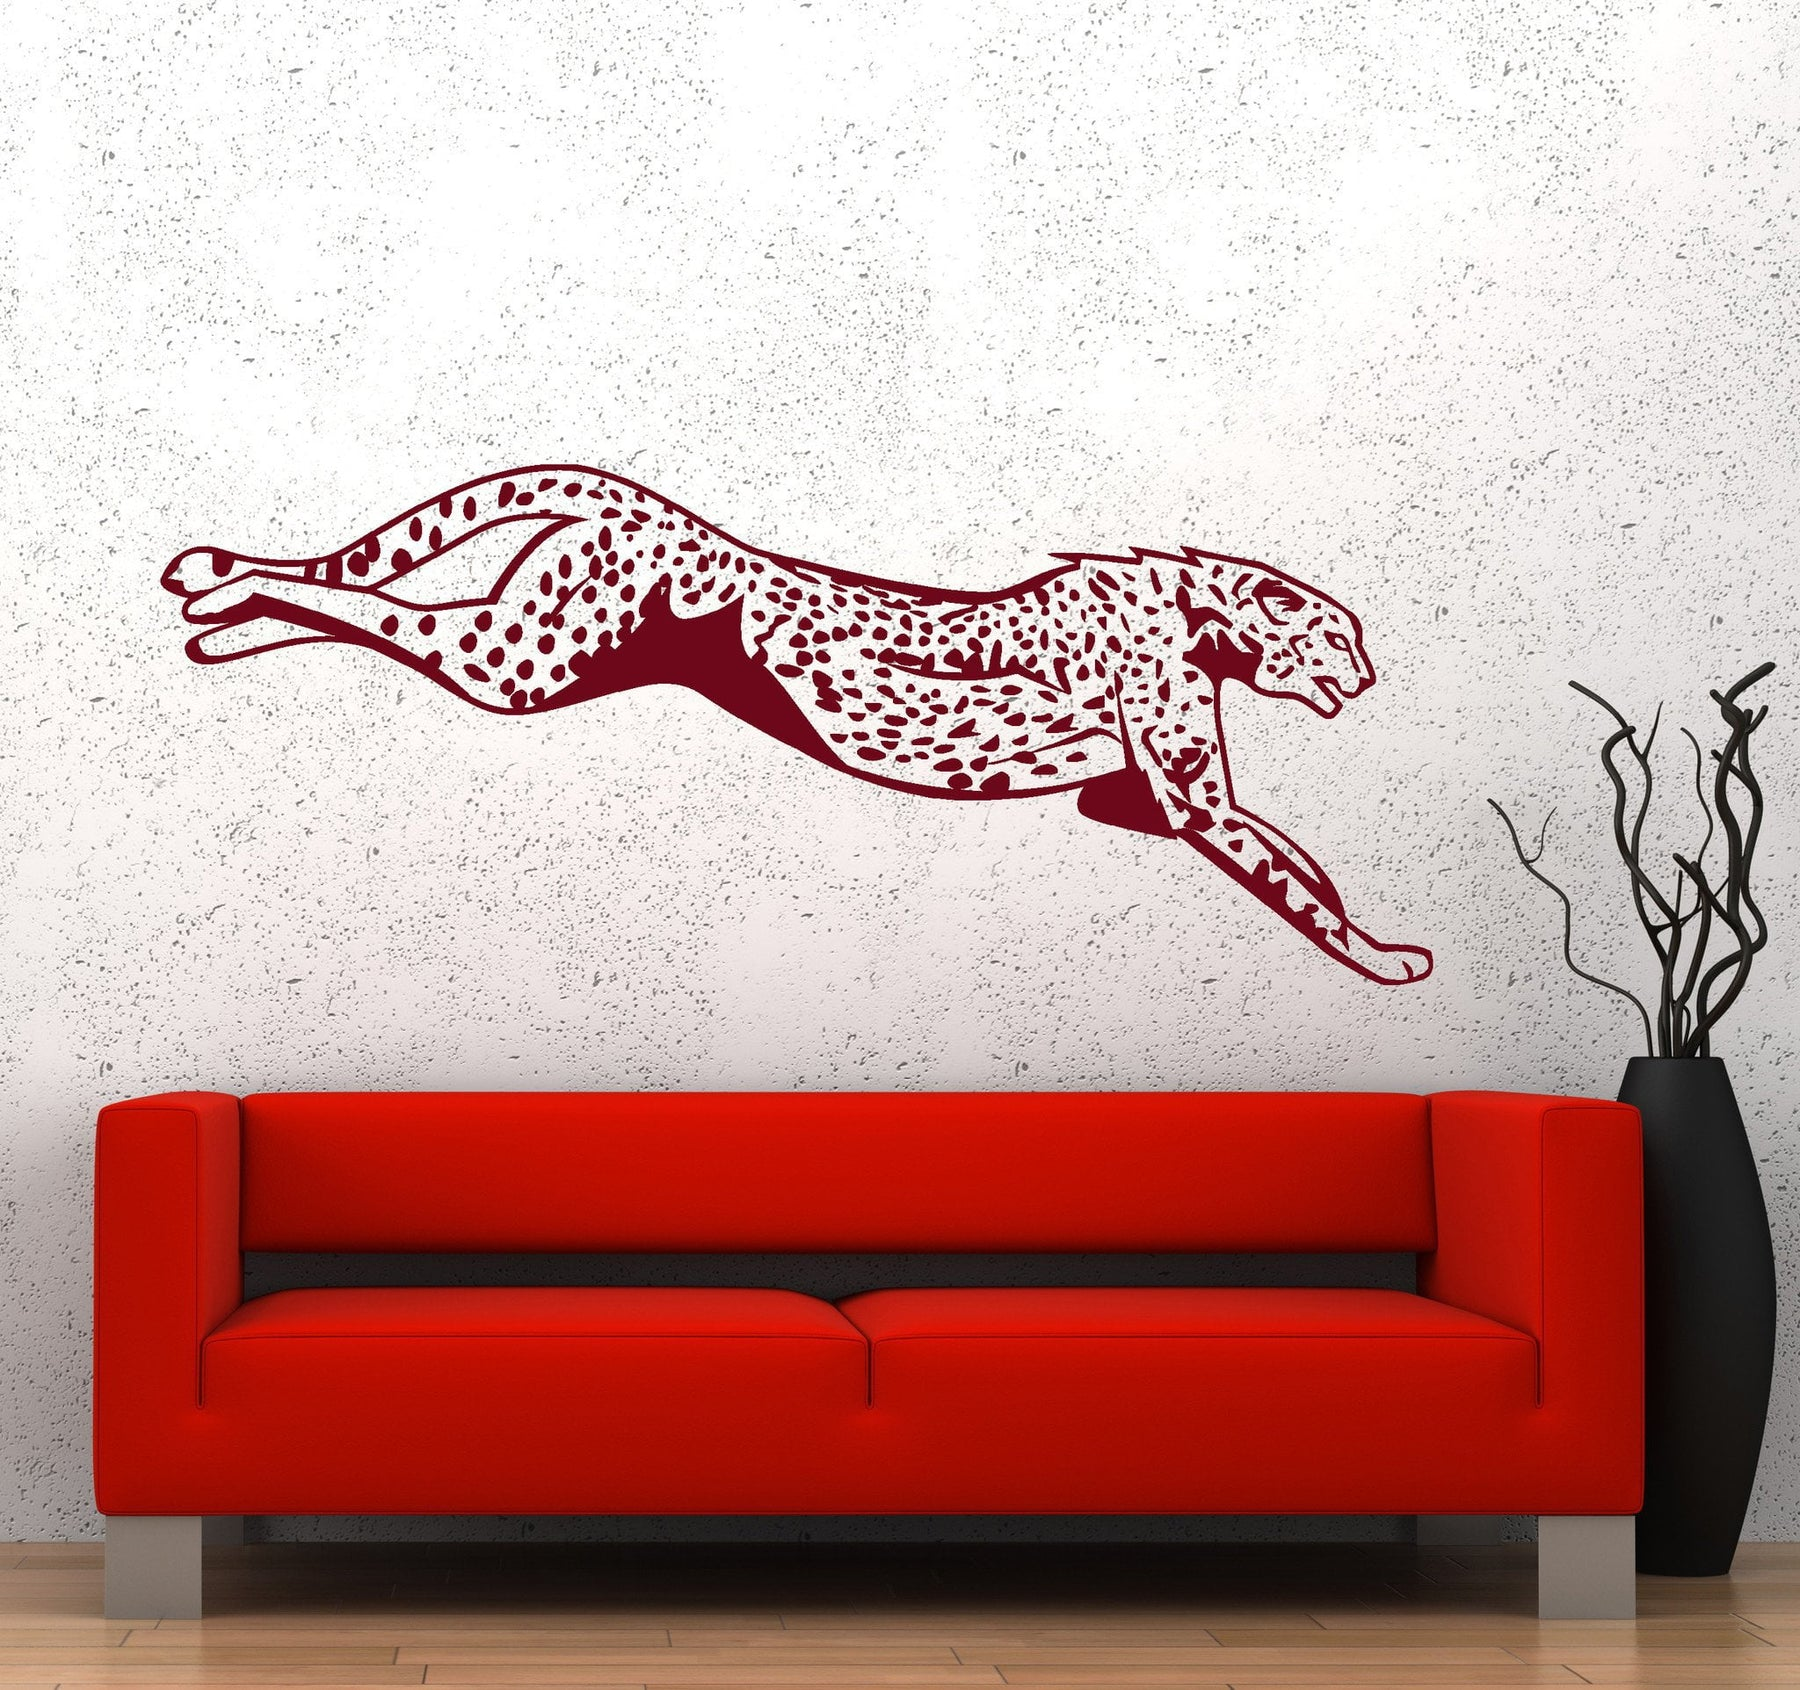 Wall Vinyl Decal Cheetah Leopard Tiger Jumping Hunting Decor Unique Gift z3667